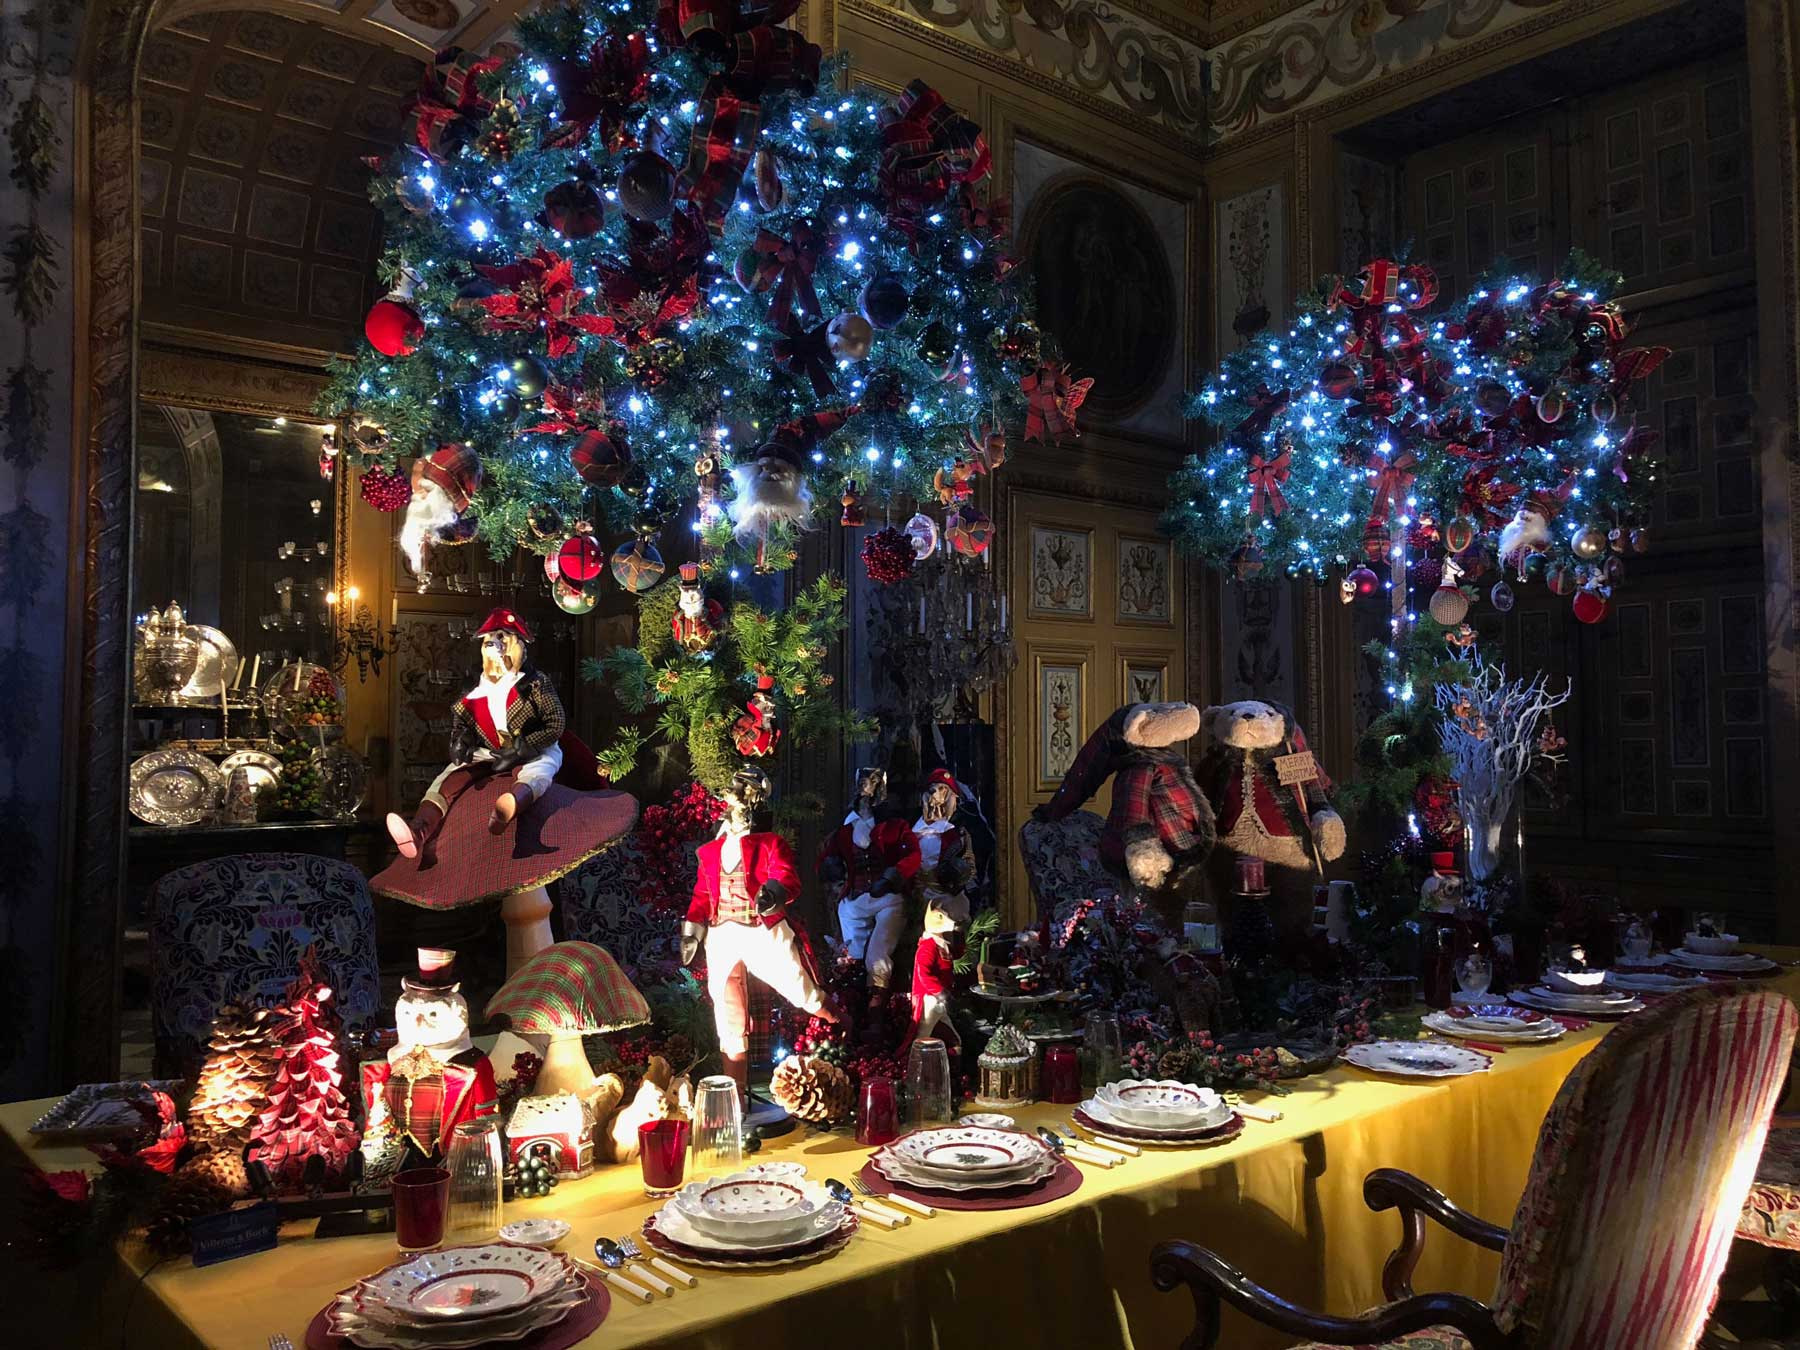 vaux-le-vicomte-christmas-table